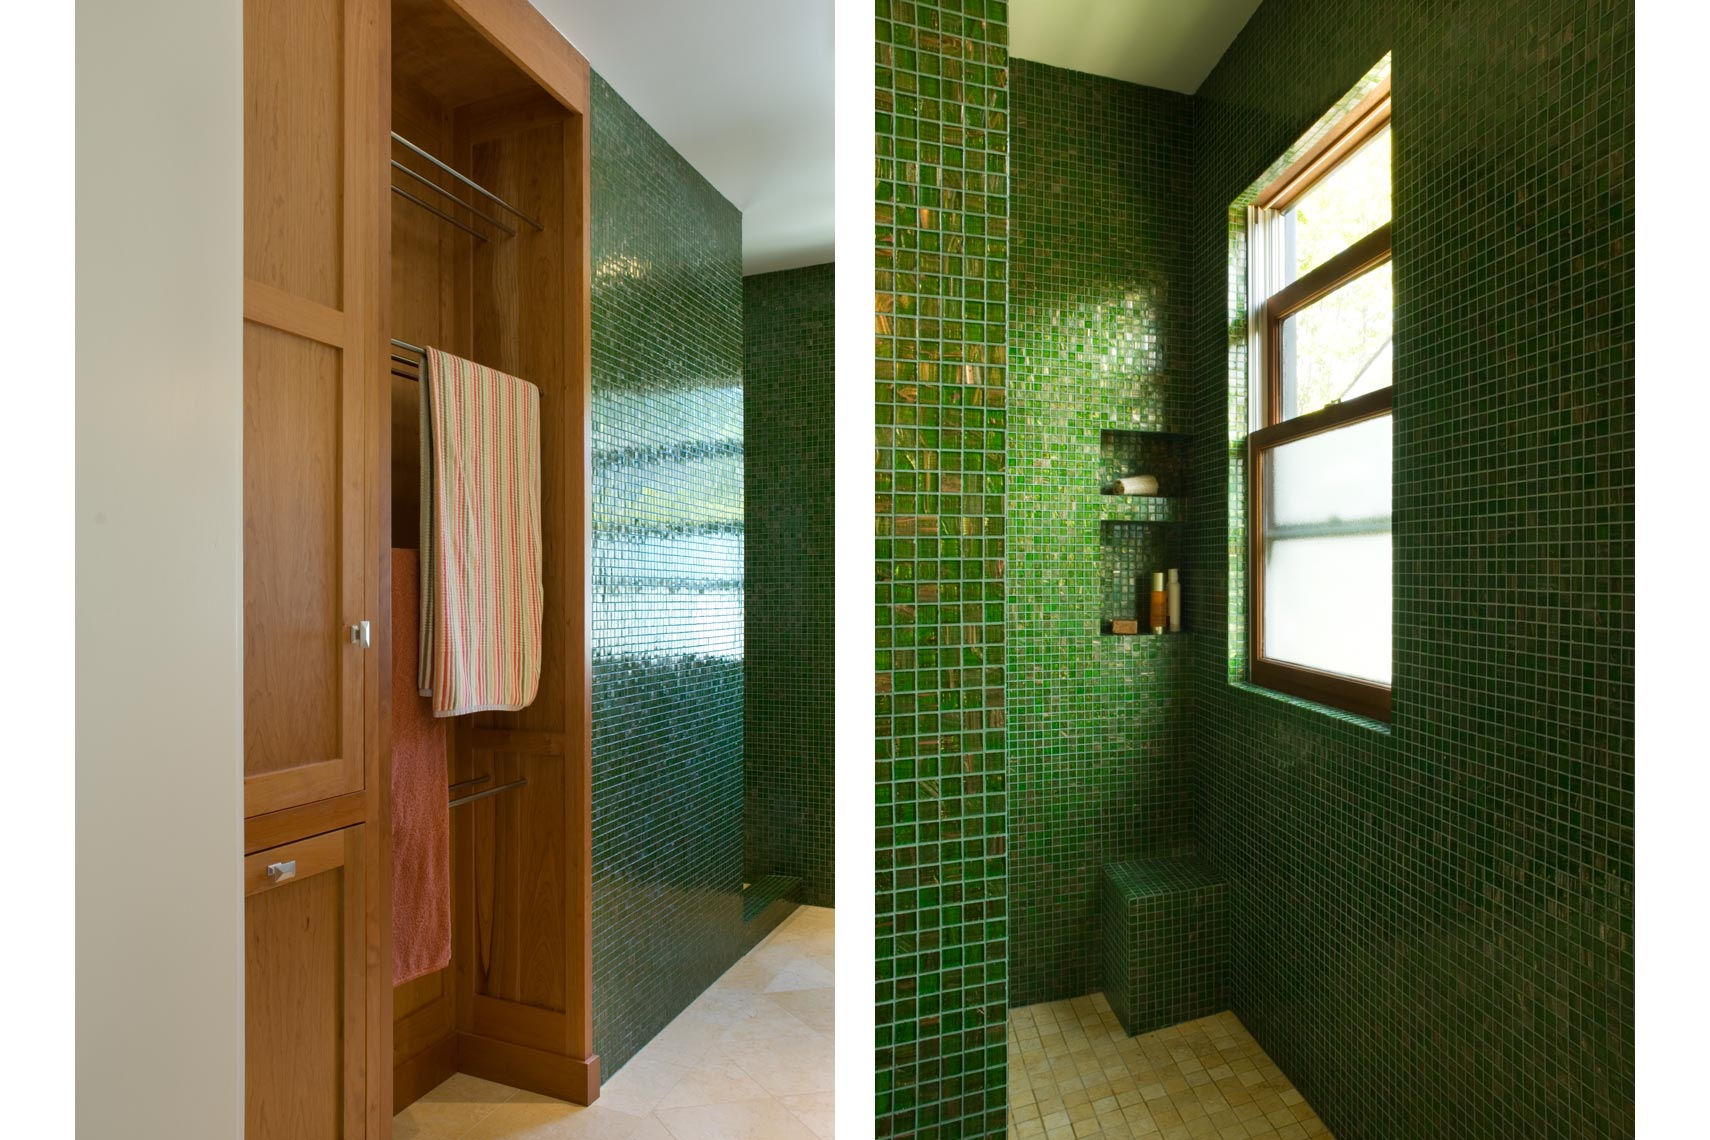 022_green-tile-br-layout